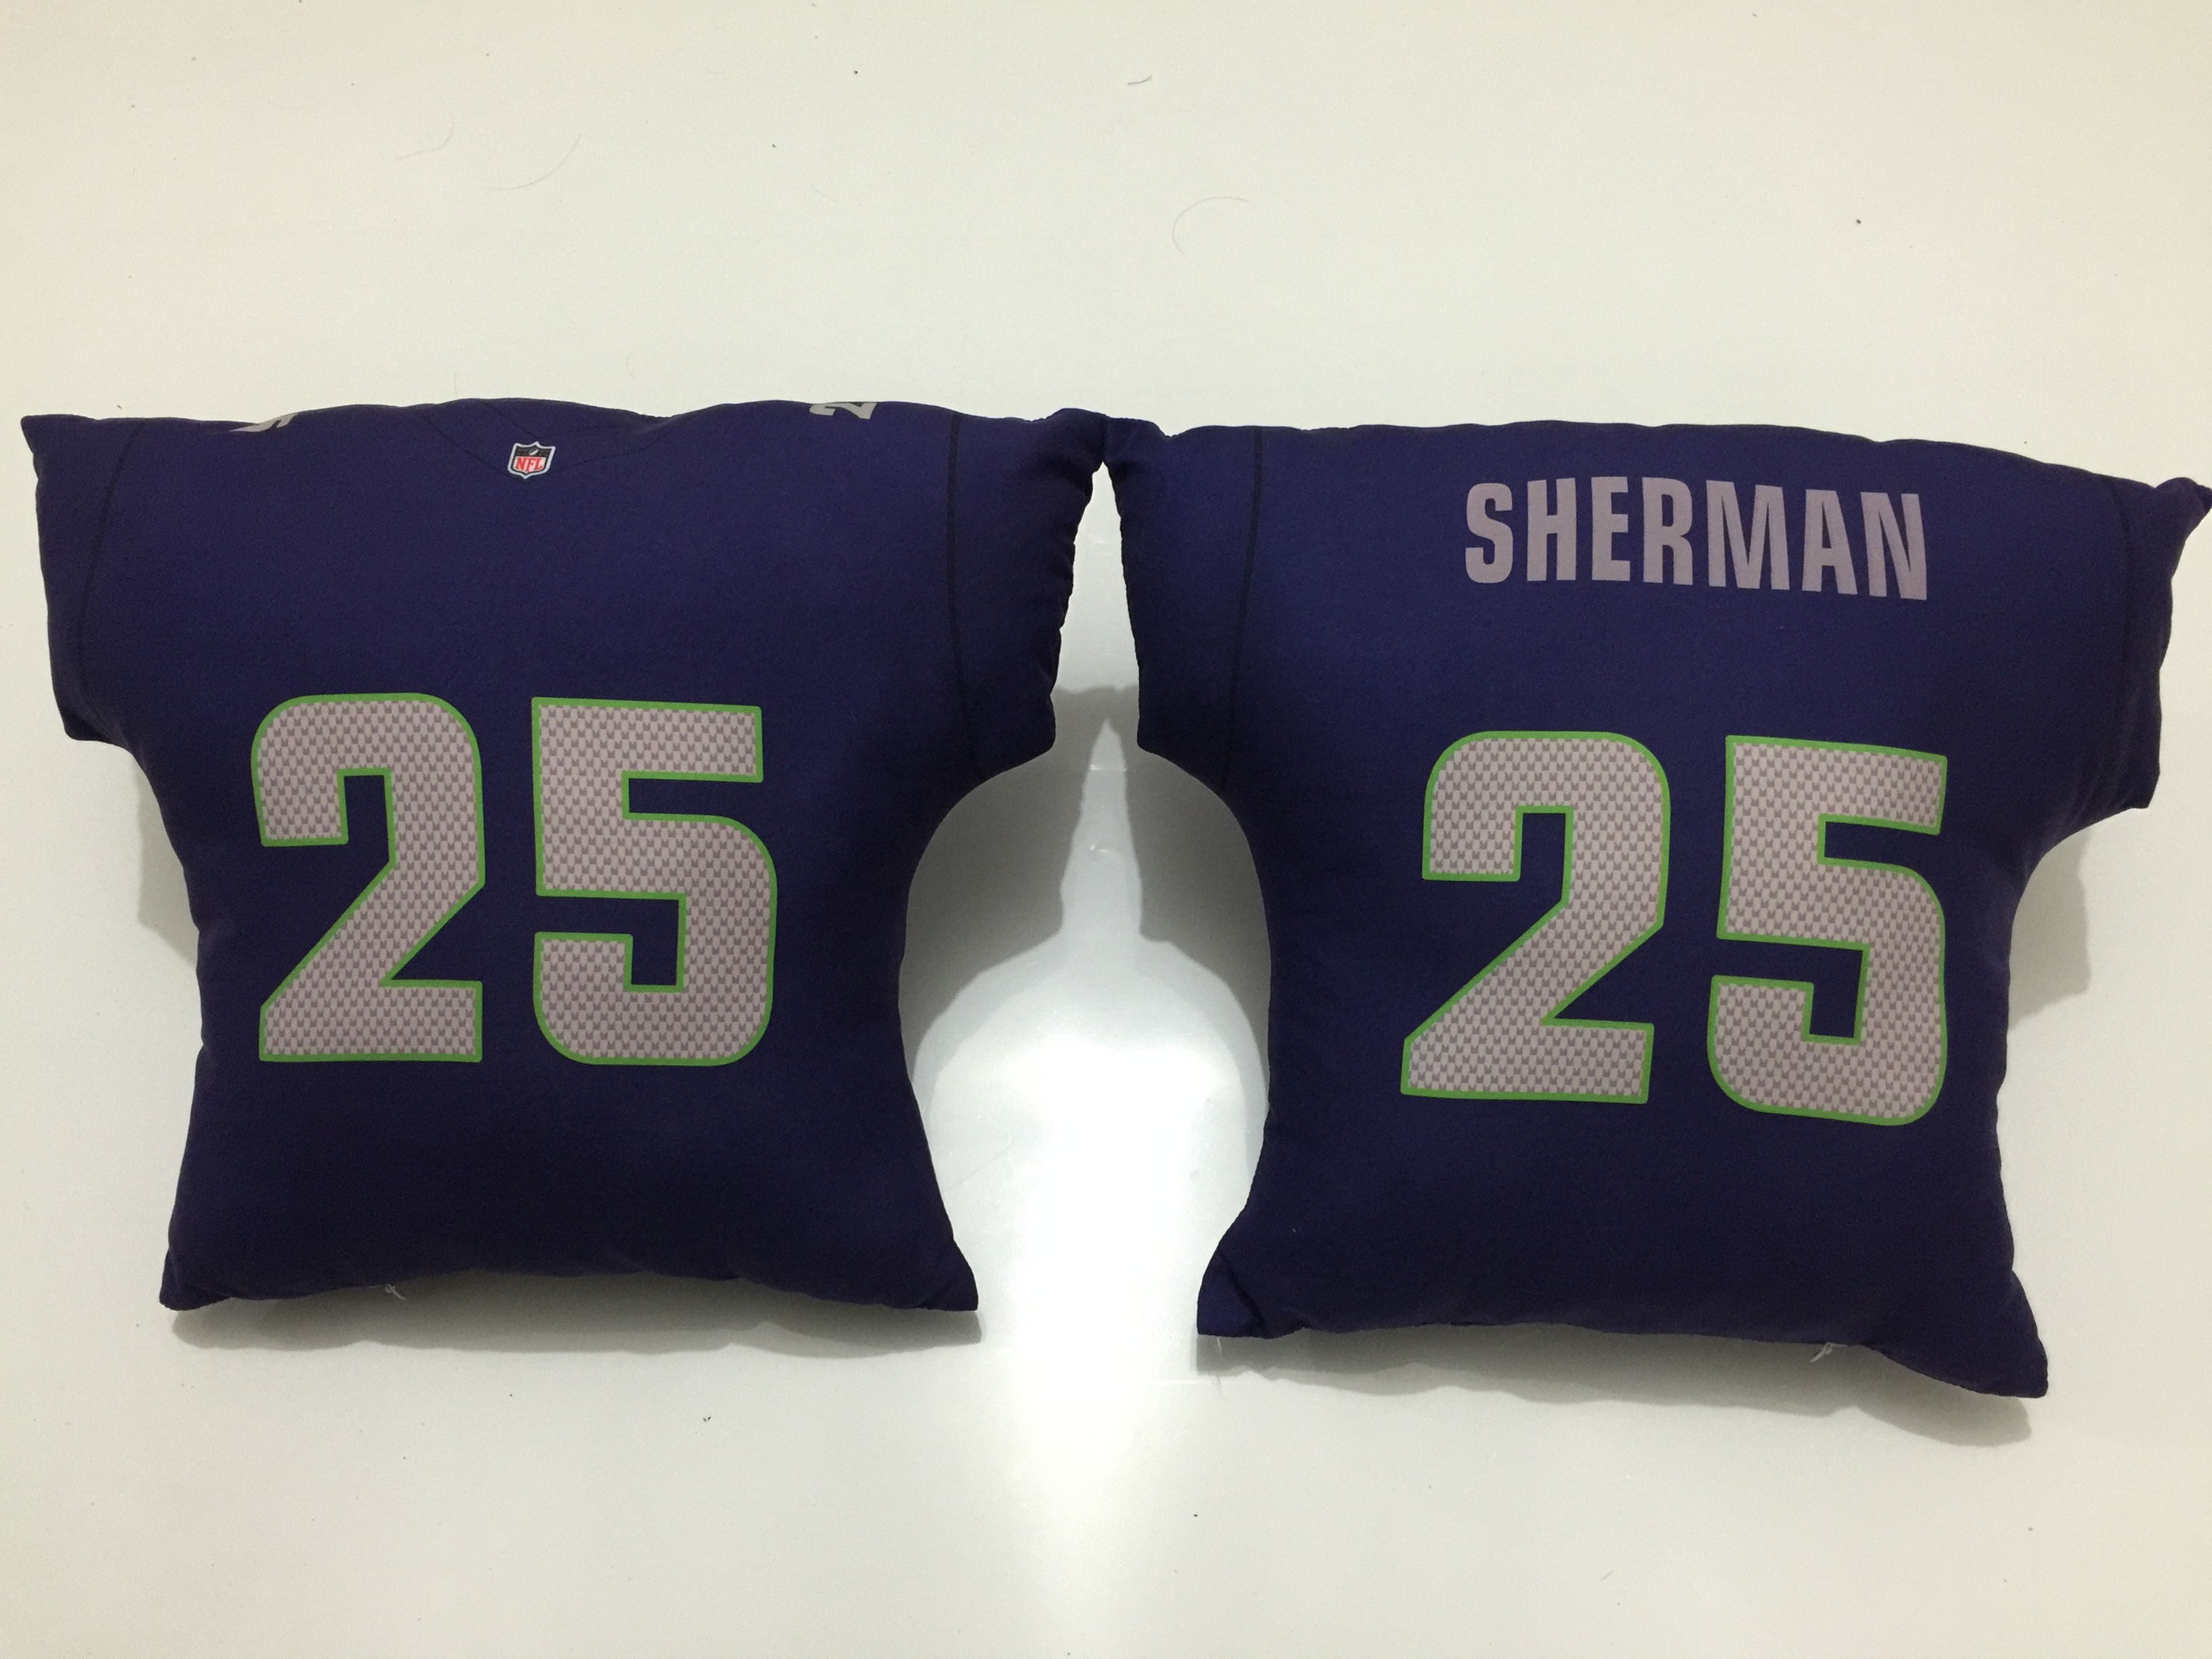 Seattle Seahawks 25 Richard Sherman Navy NFL Pillow